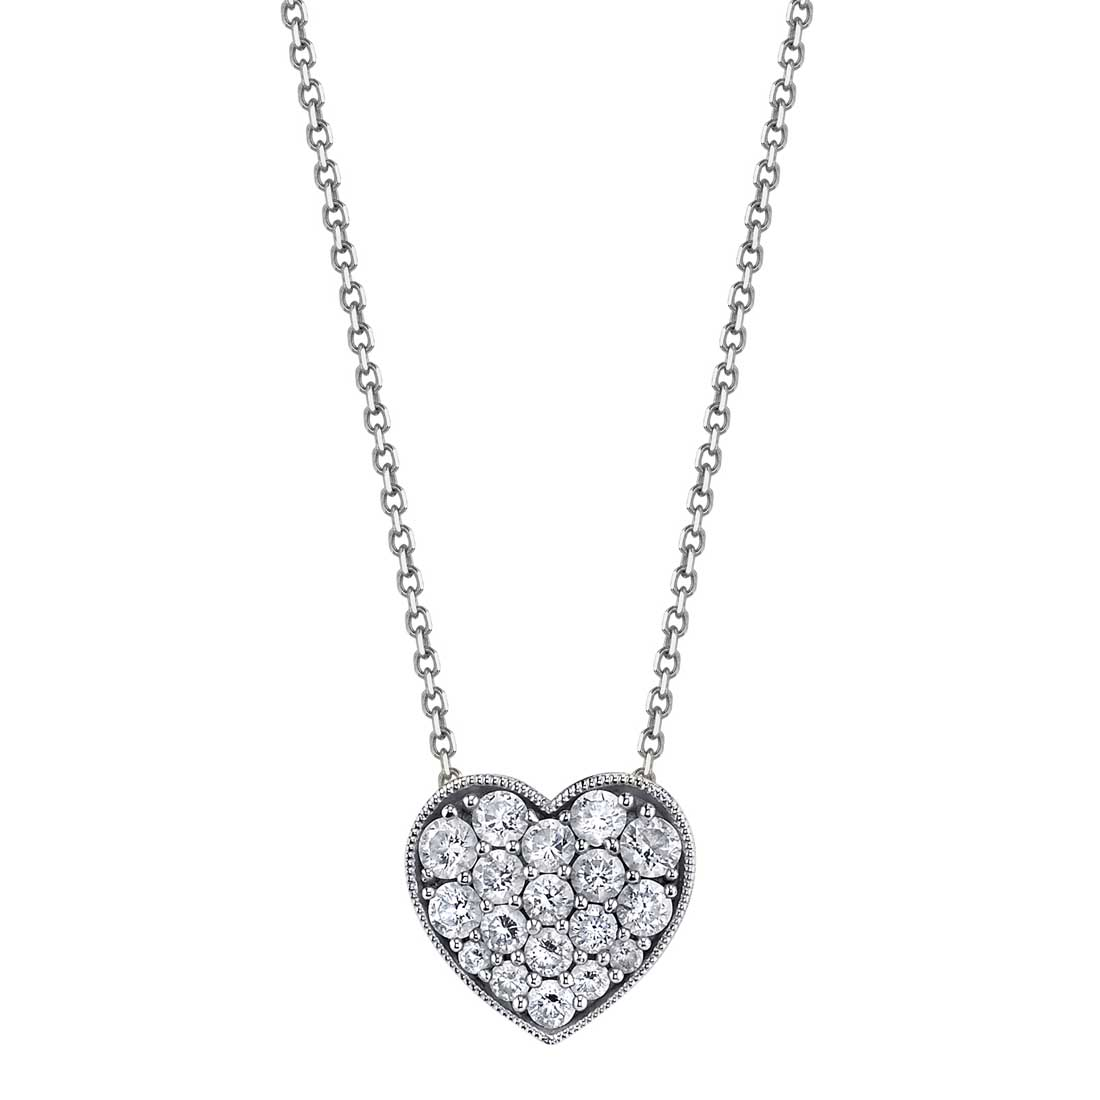 Heartaped Diamond Necklace in White Gold